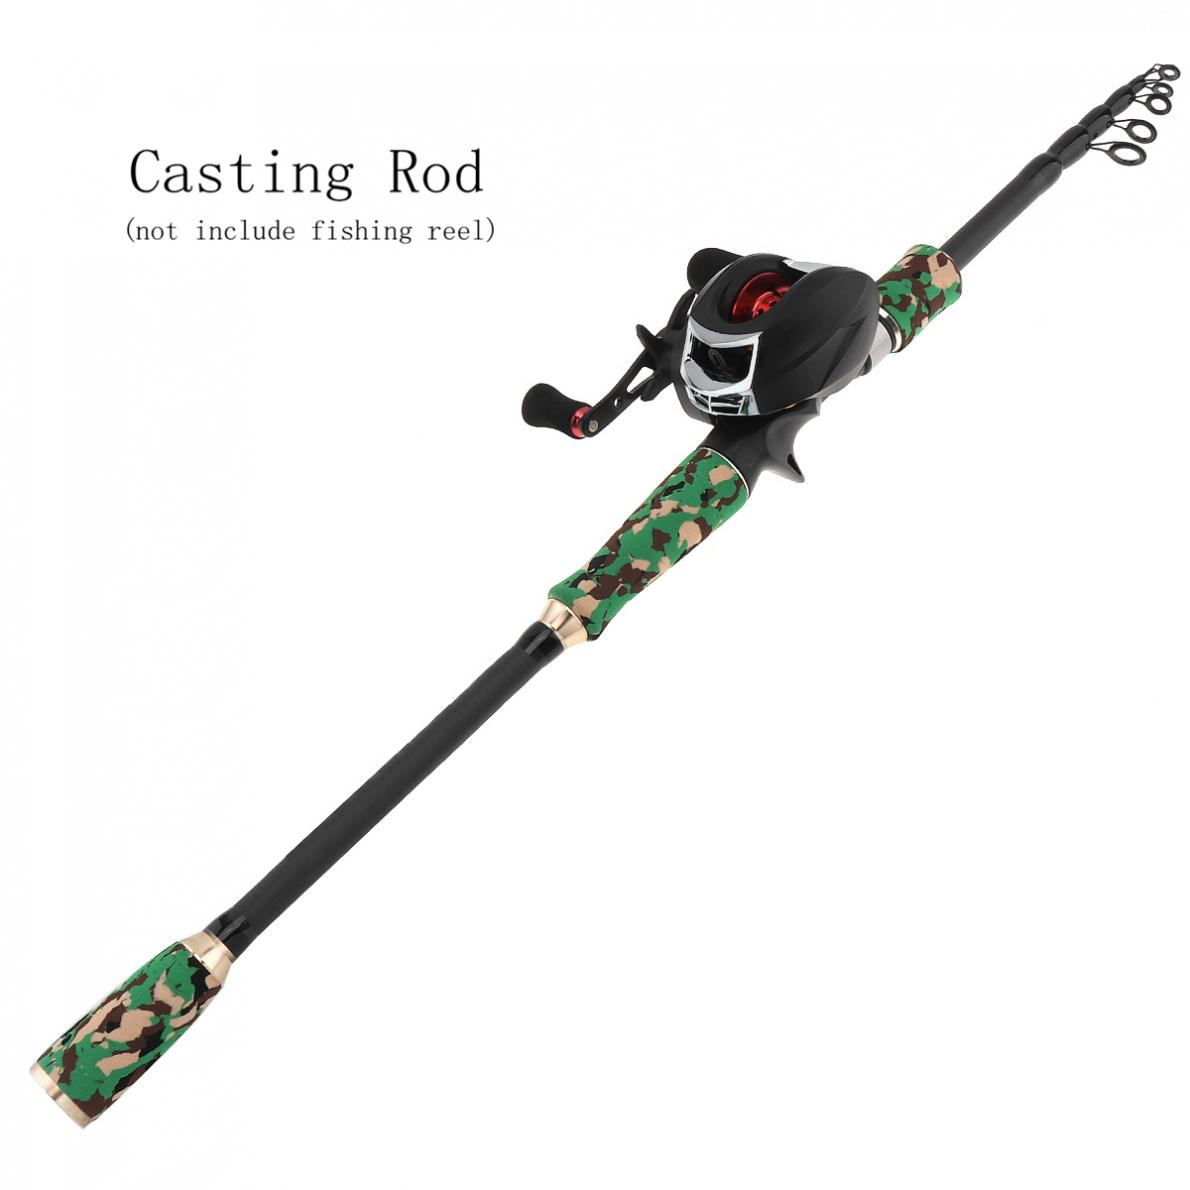 2 7m Green Camouflage Color Carbon Fiber Lure Fishing Rod Spinning Casting Rod 7 Sections Telescopic Ultra Light Fishing Pole in Fishing Rods from Sports Entertainment